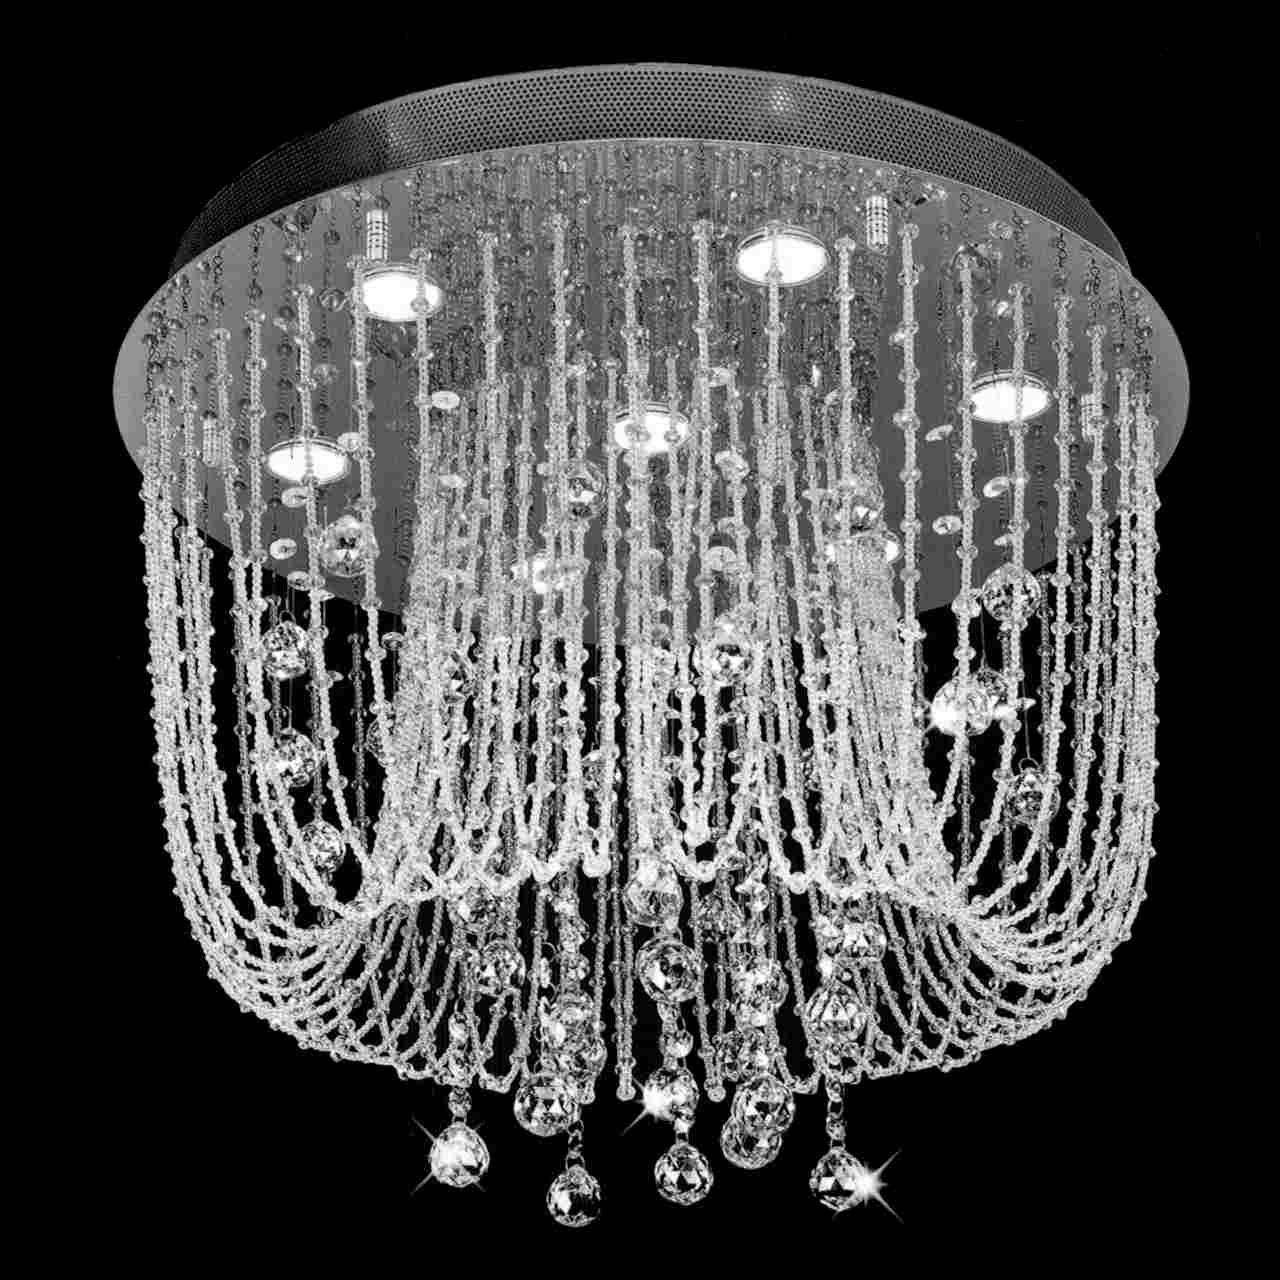 Brizzo lighting stores 24 chateaux modern foyer crystal show details for chateaux modern foyer crystal chandelier mirror stainless steel gold plated base 7 lights arubaitofo Image collections